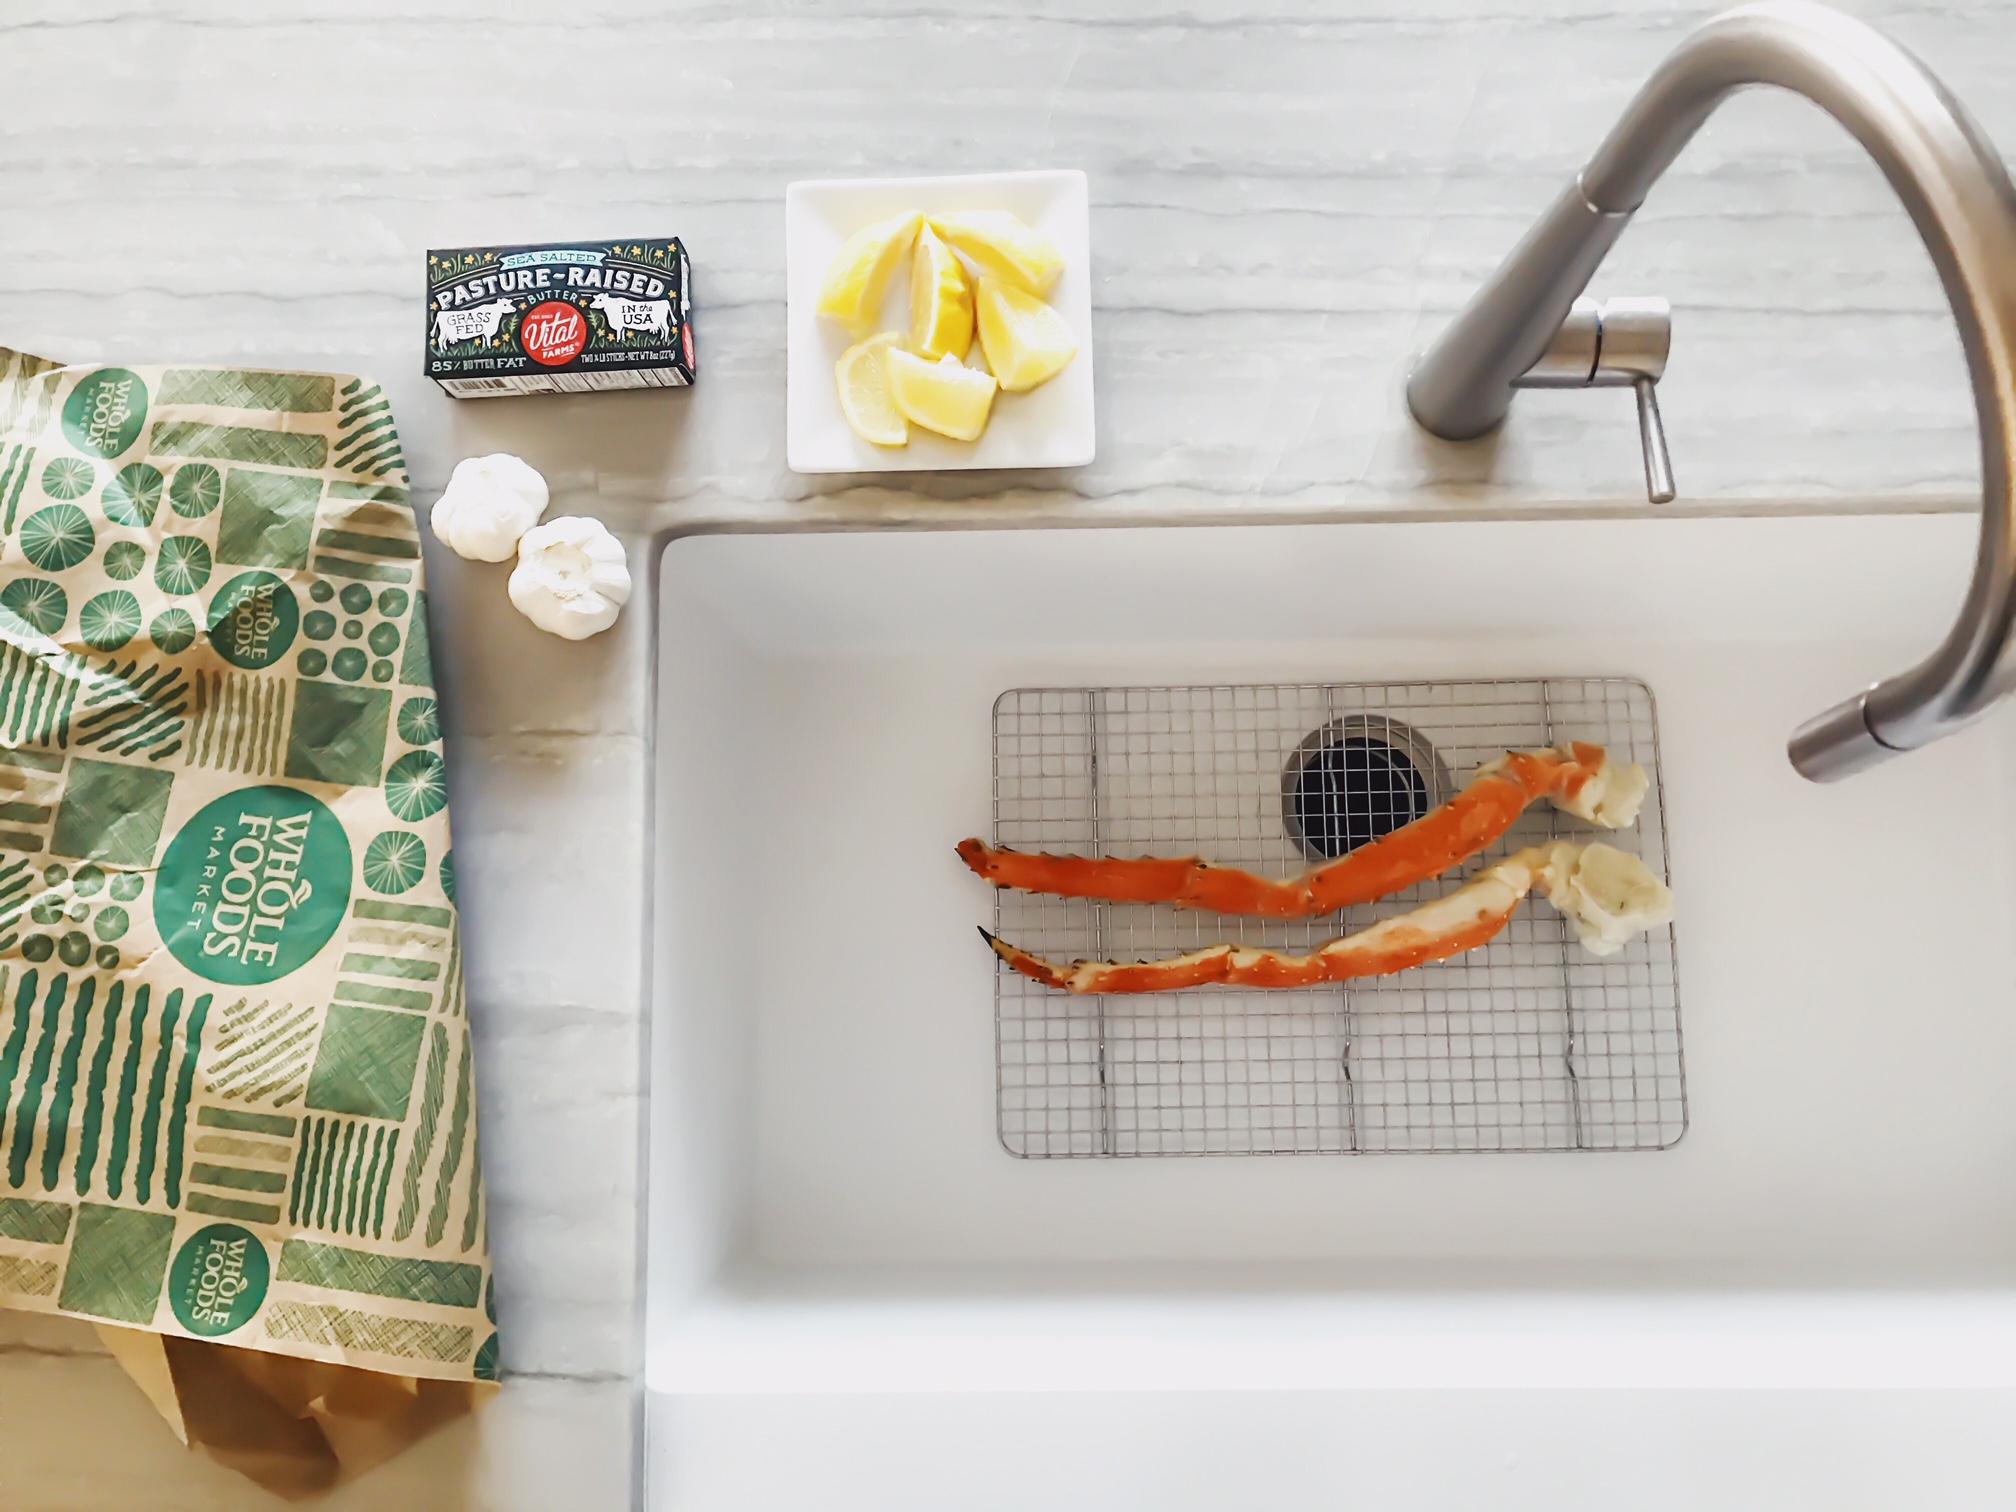 How to prepare King Crab Legs at home. Garlic Butter King Crab Legs. Whole Foods Market Sustainably Caught Seafood. How To Have A Low Key Fancy New Year's Eve At Home With Your Family. New Year's Eve ideas for kids. How to celebrate the new year at home. New Year's Eve With Kids. Shopping at Whole Foods Market For The Holidays. #sponsored #MakesMeWhole #LowKeyNYE #Whole #Foods